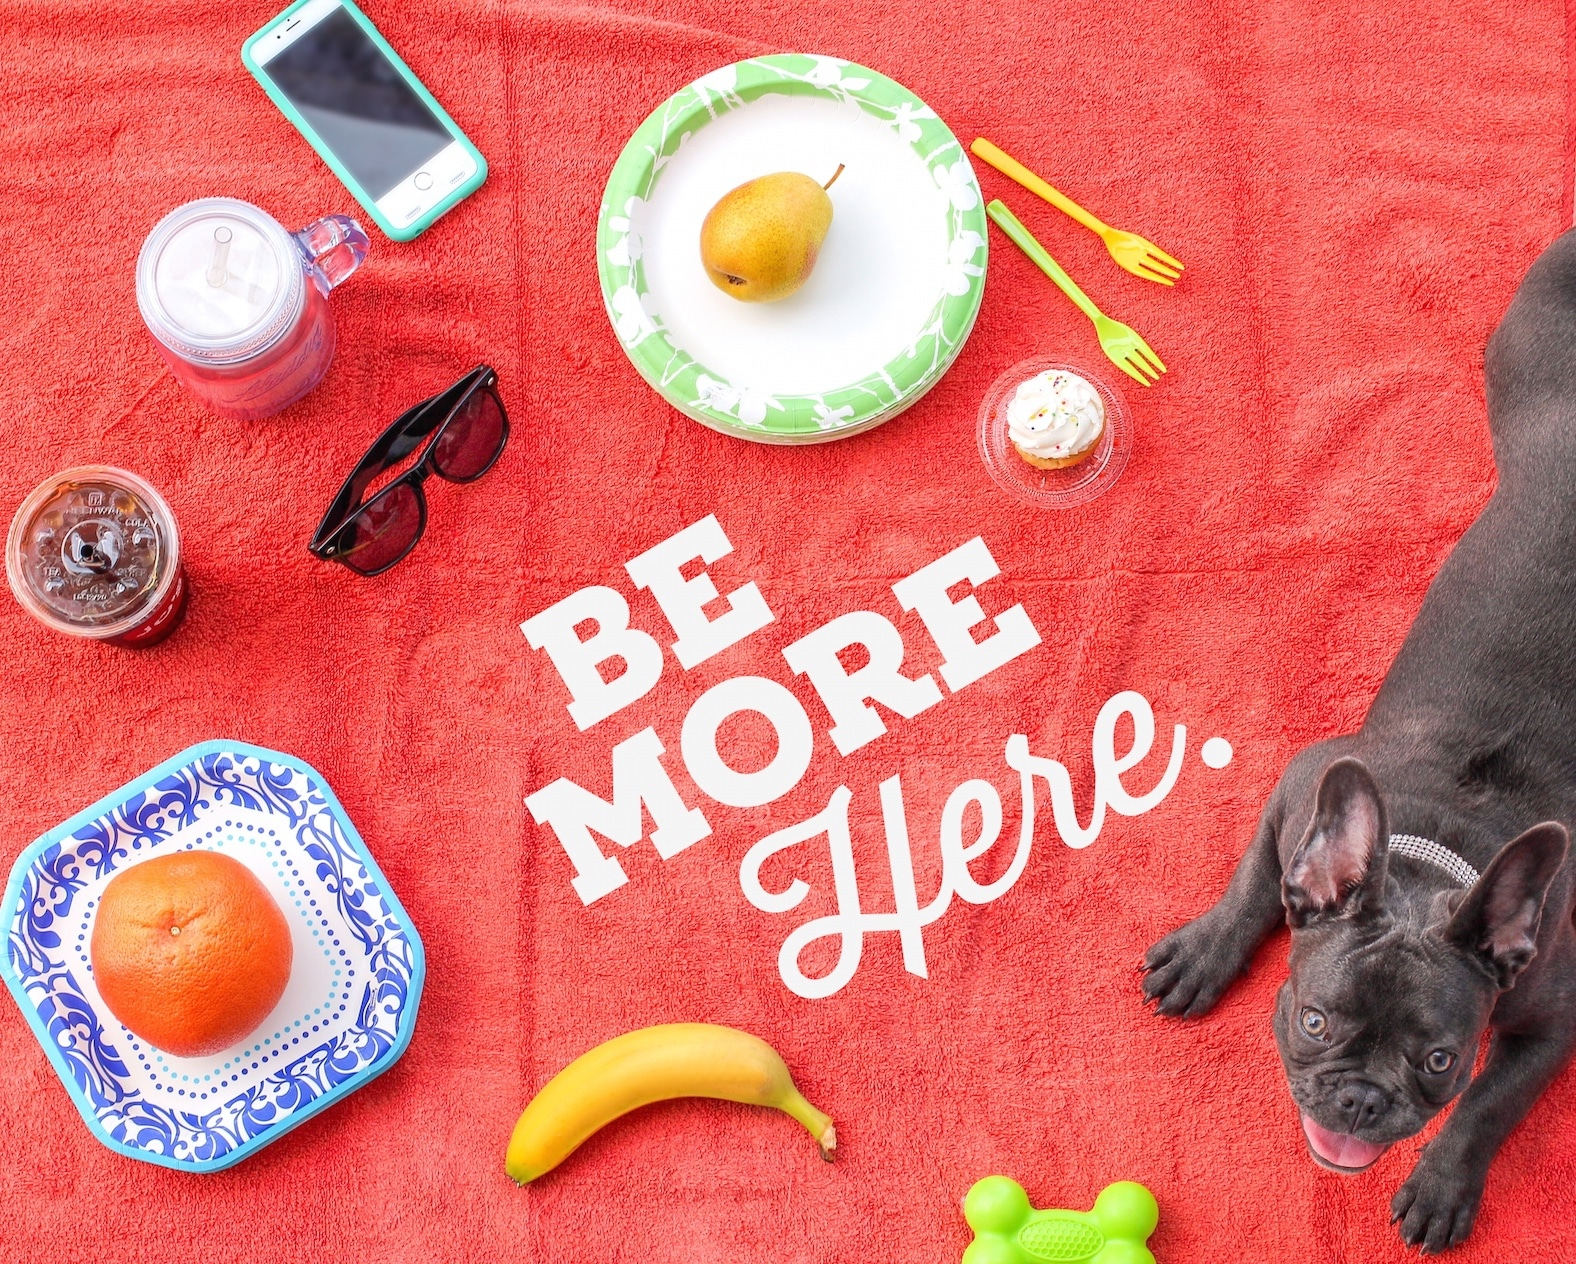 Dixie - Be More Here - Desserts with Benefits